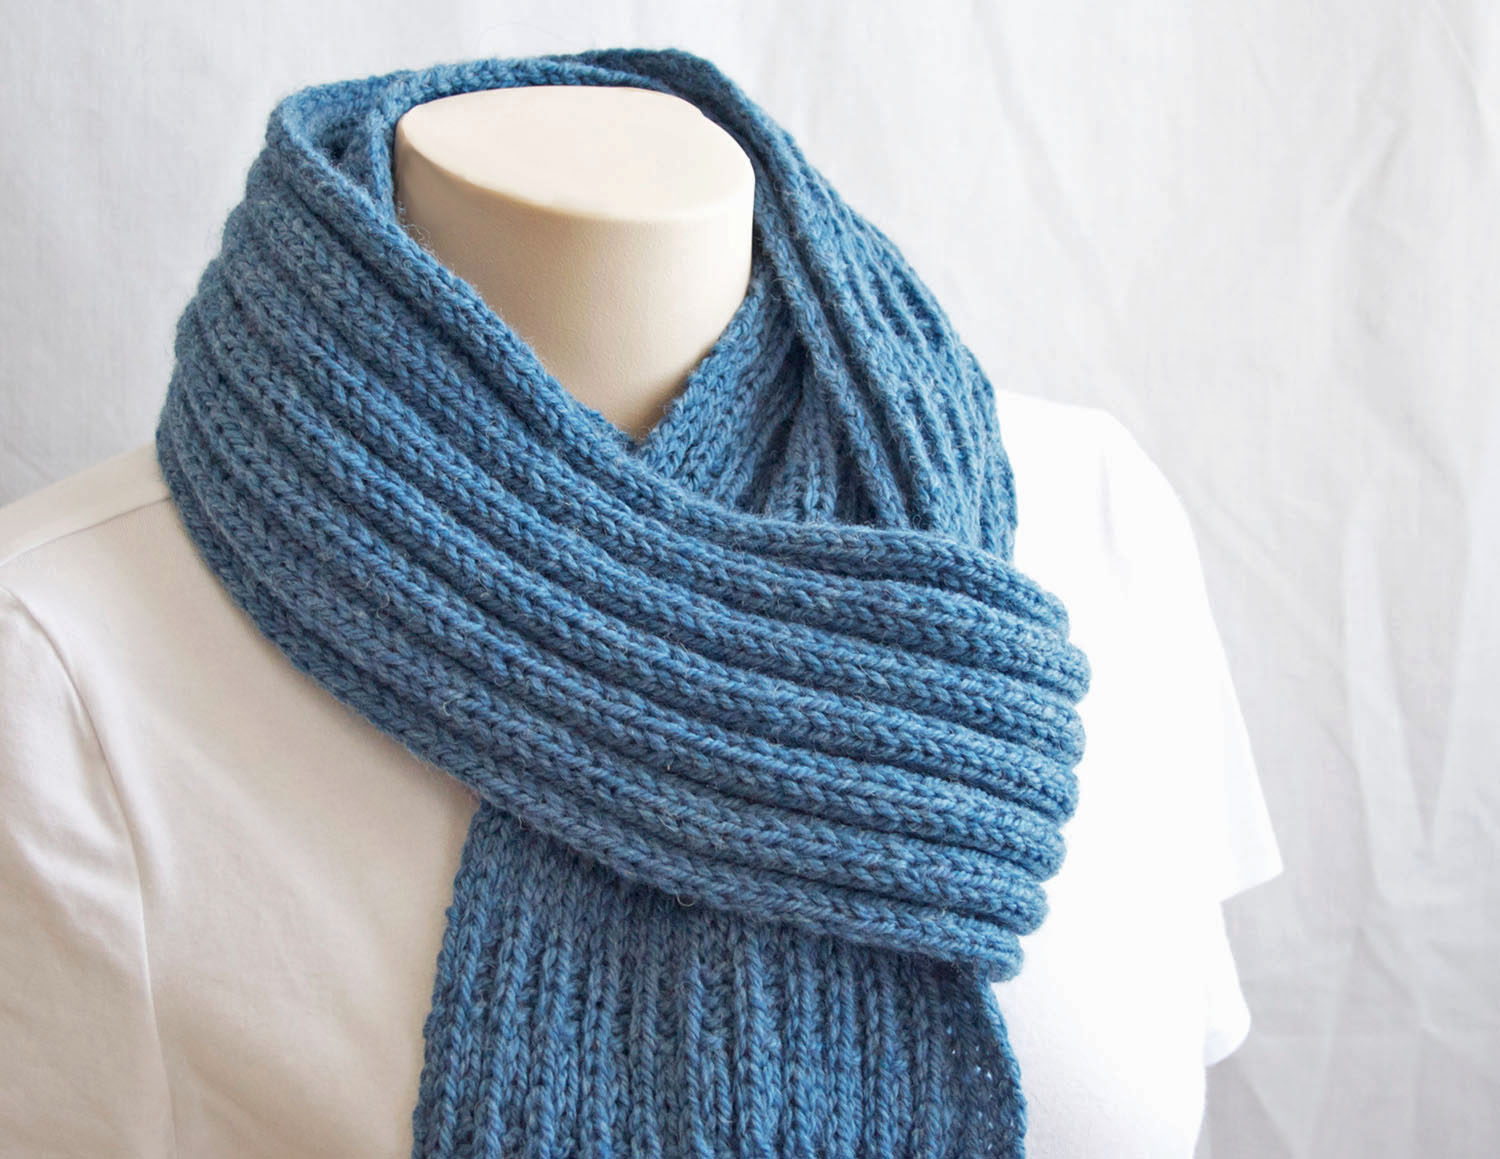 Easy Knitting Stitches For A Scarf : Une maille a la fois: Knitting Pattern Scarf ... Patron pour un foulard